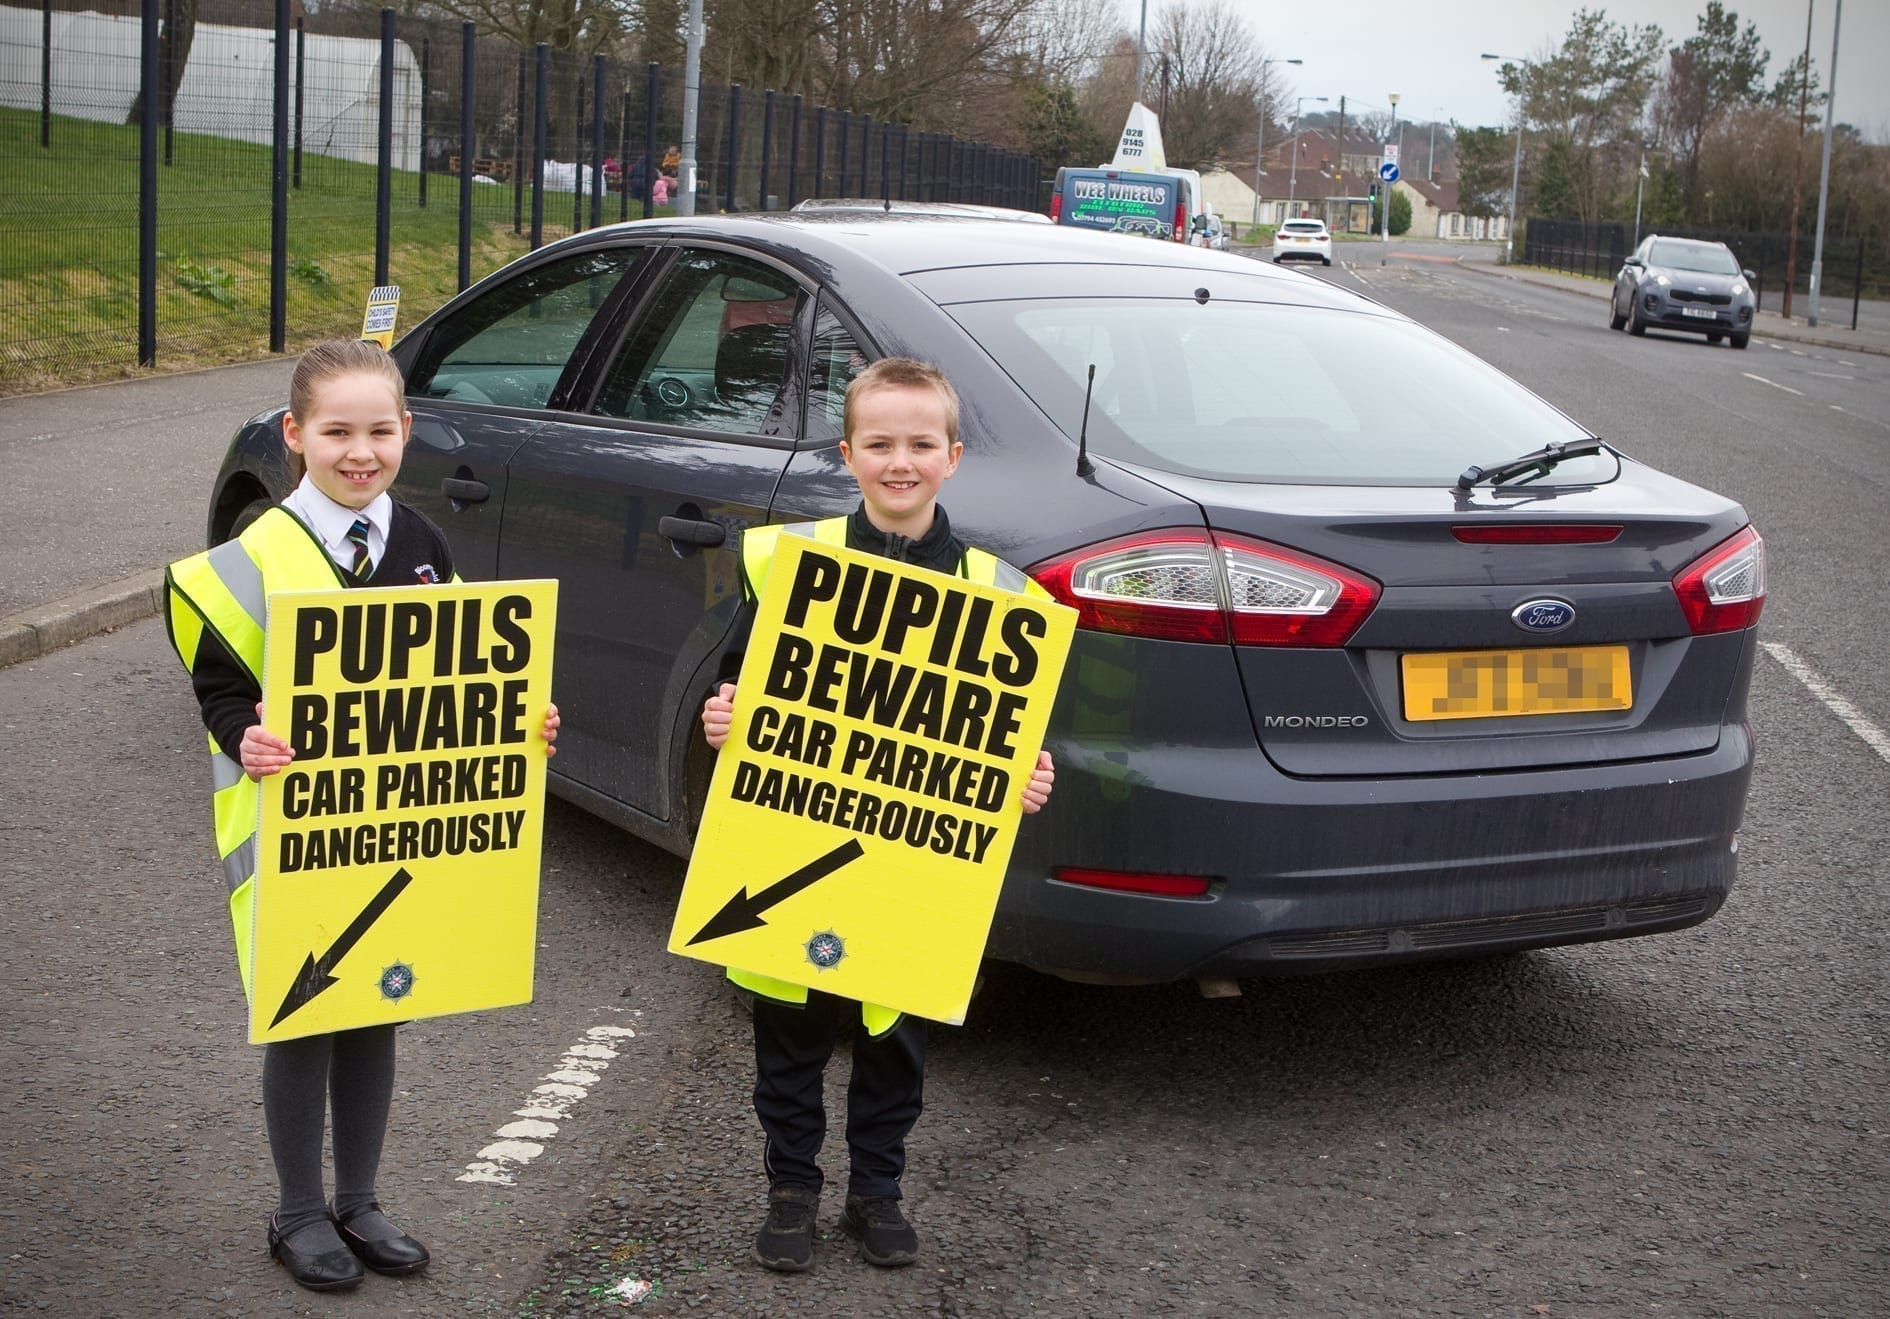 Police and pupils join forces to call out bad parking